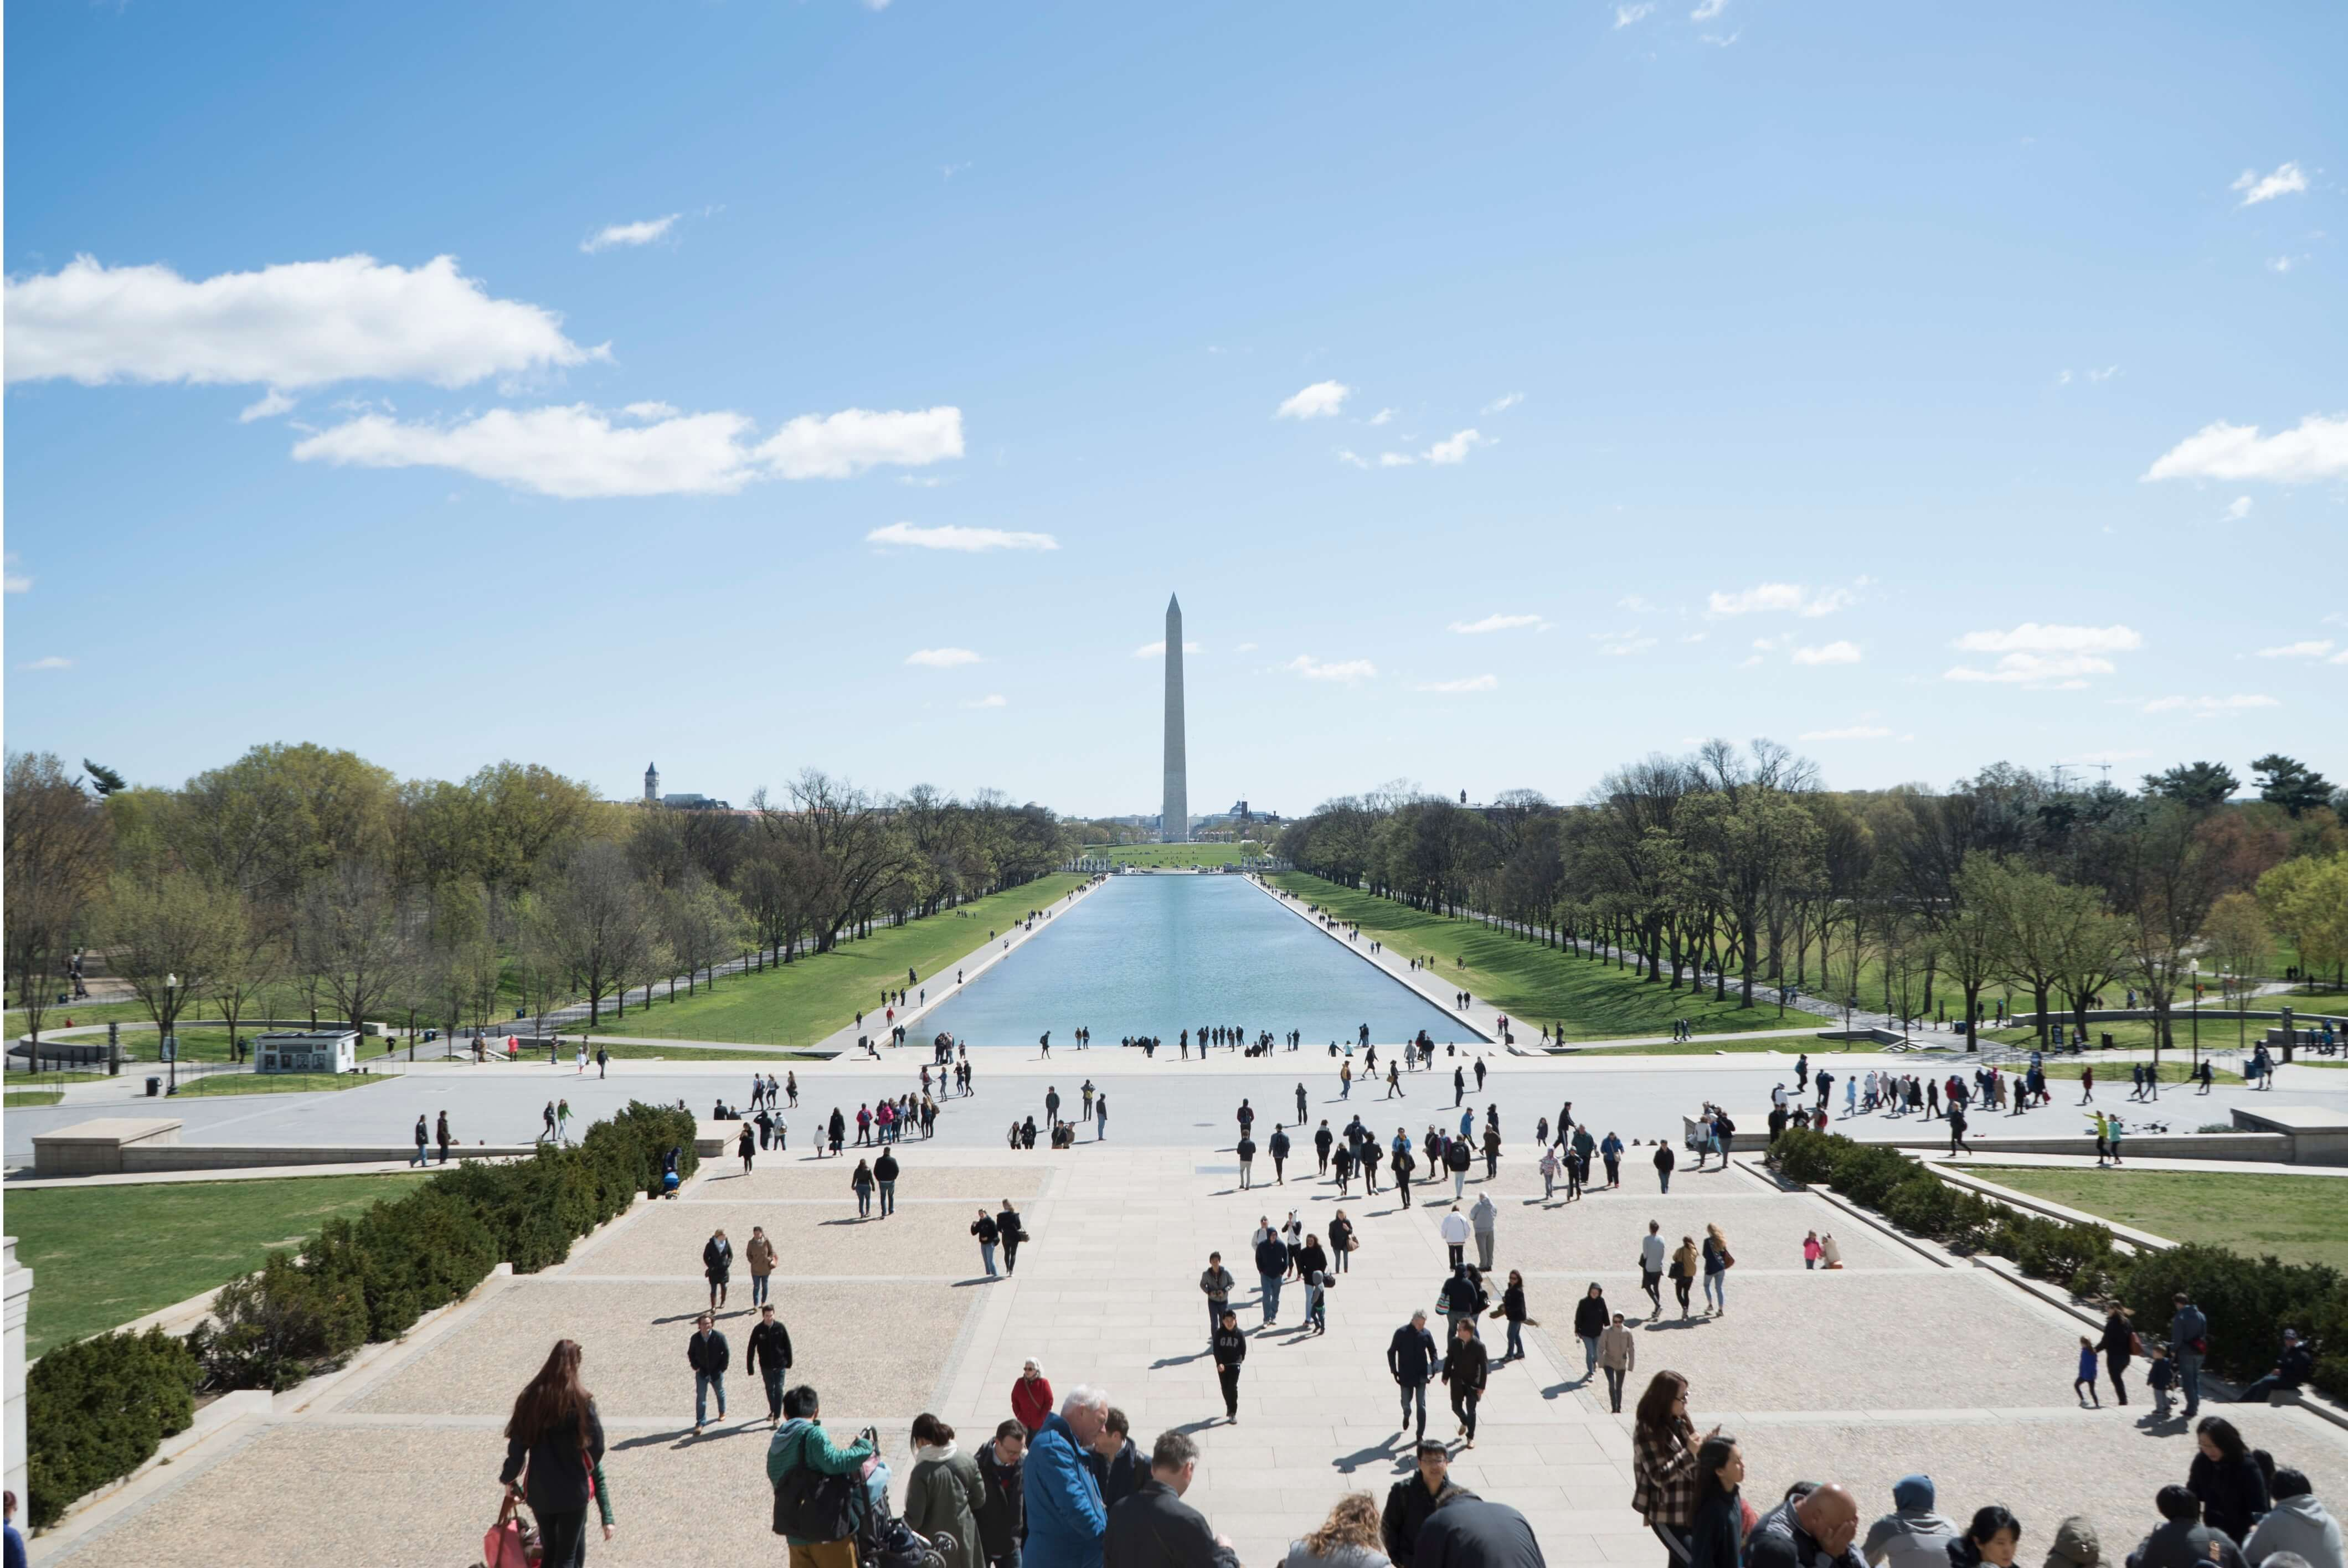 DC Sightseeing Tours: 4 Exciting Ways to See the City